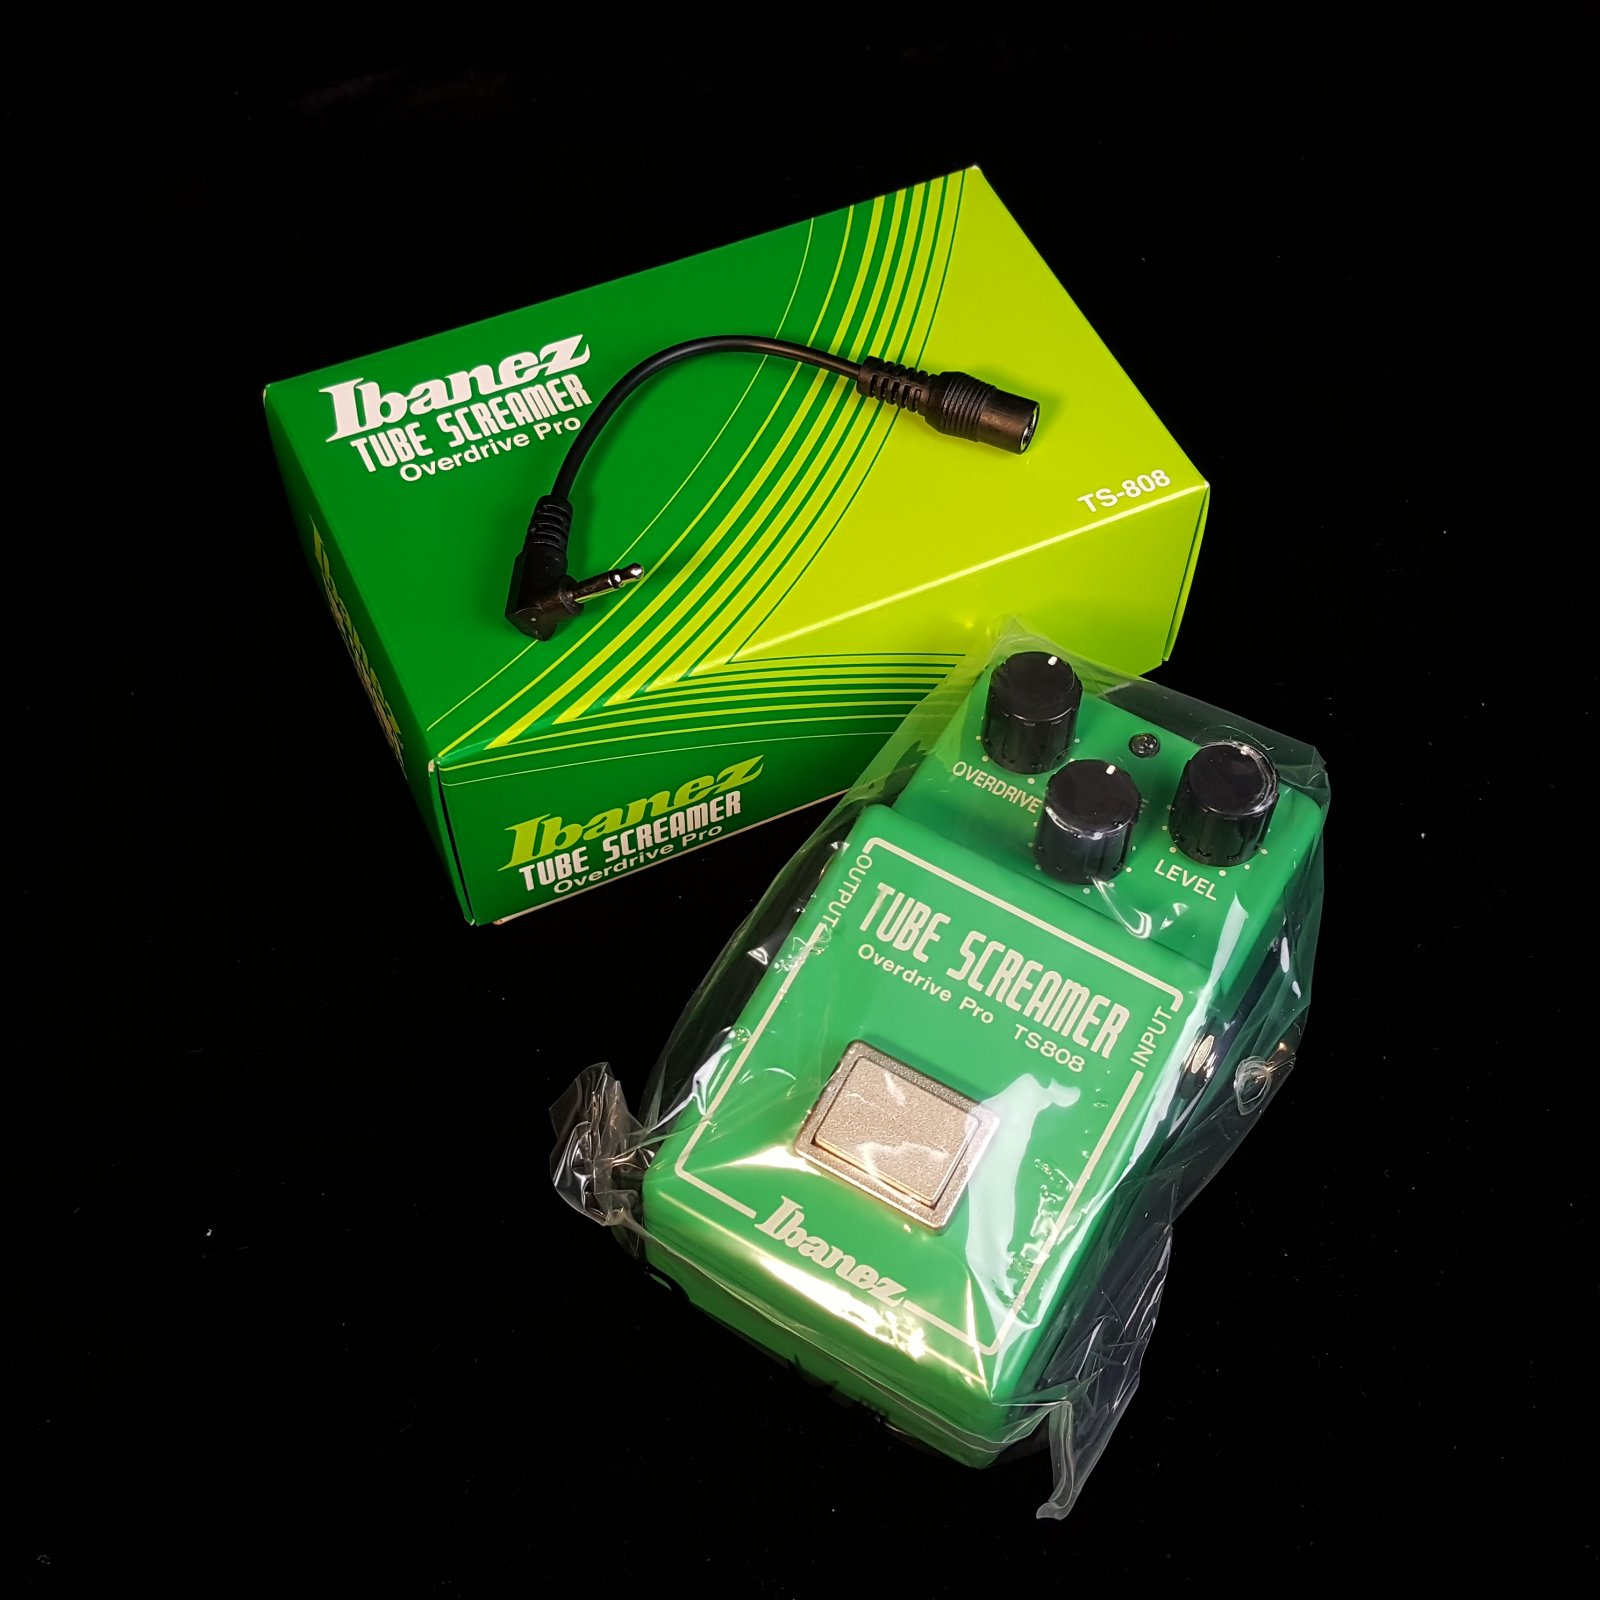 Ibanez Tube Screamer Overdrive Pro TS-808